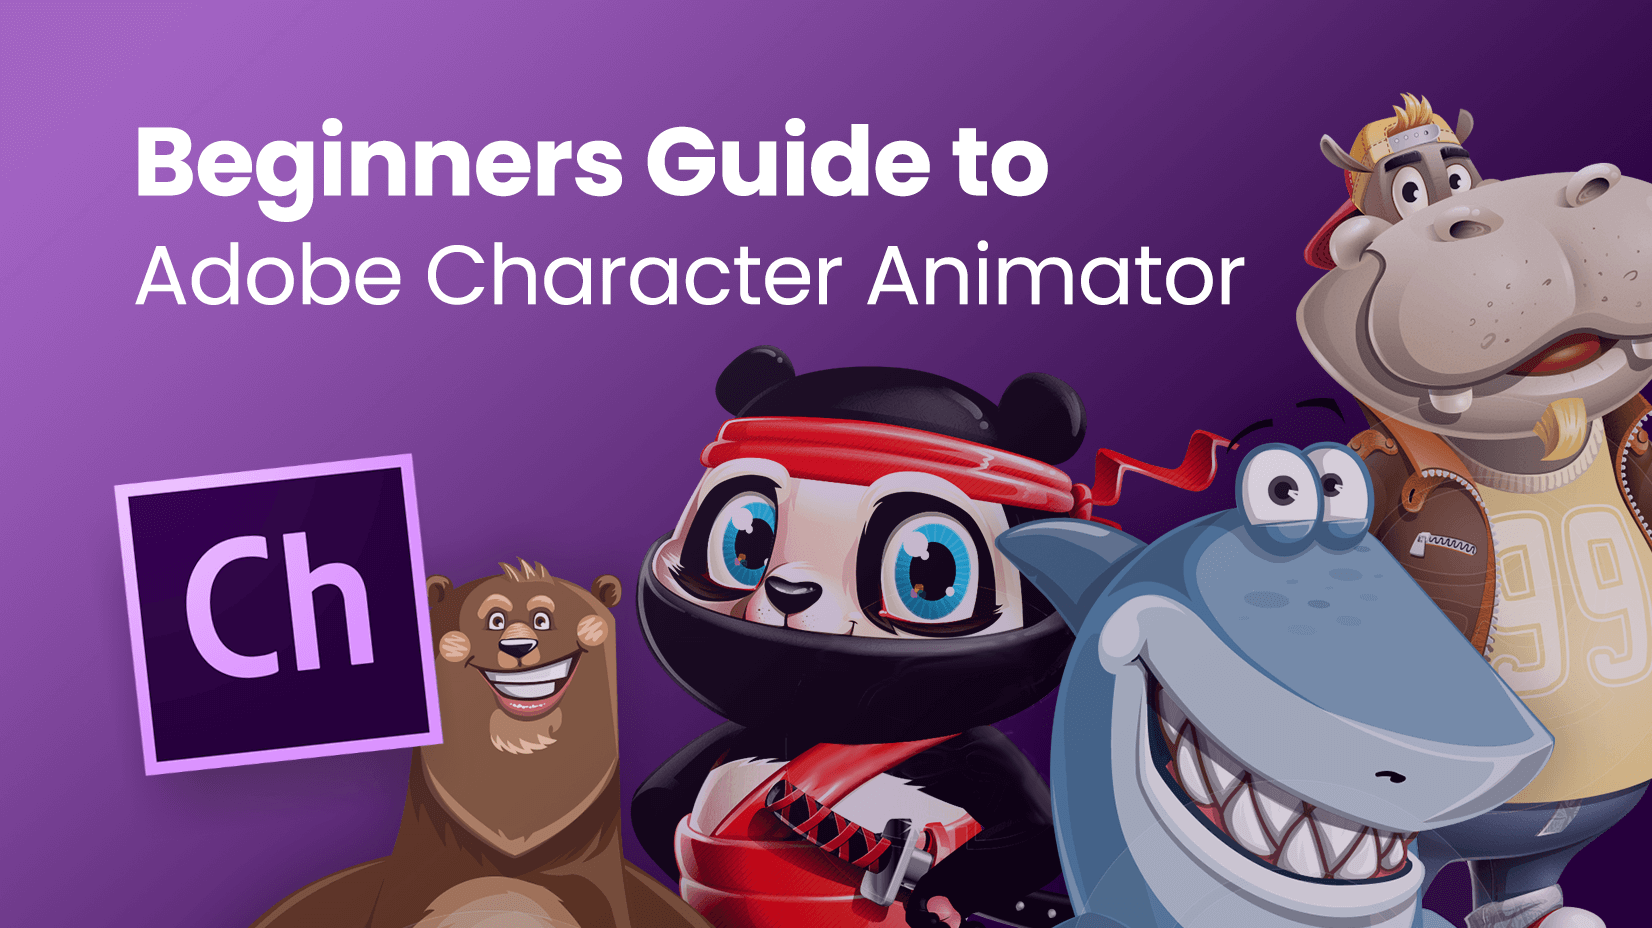 Beginners Guide to Adobe Character Animator